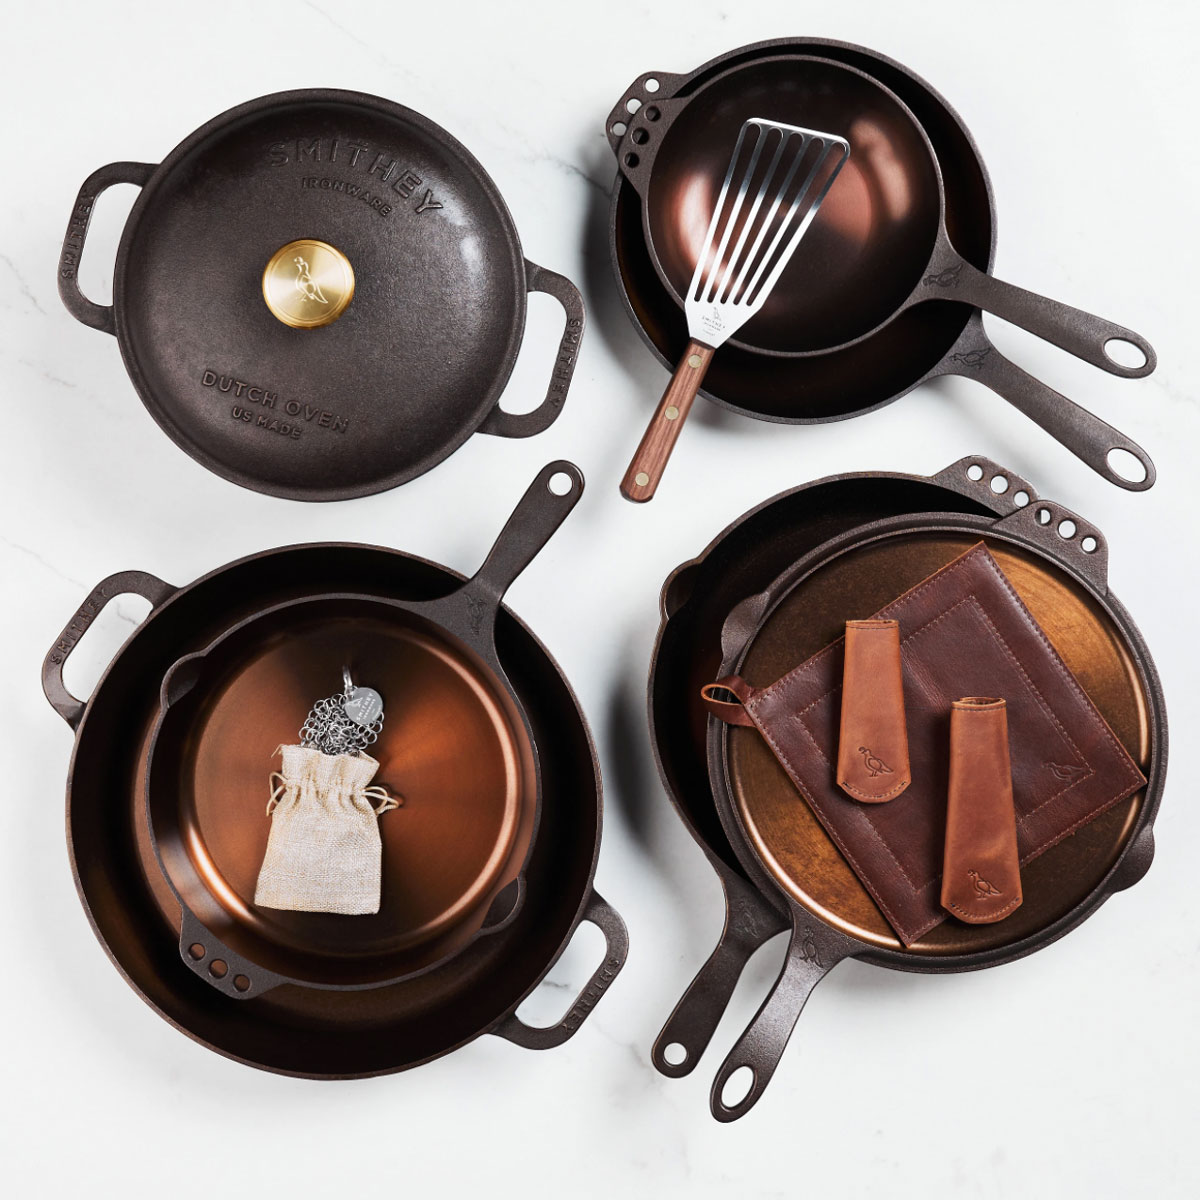 dutch oven, skillets, and pans by Smithey Ironware Co.